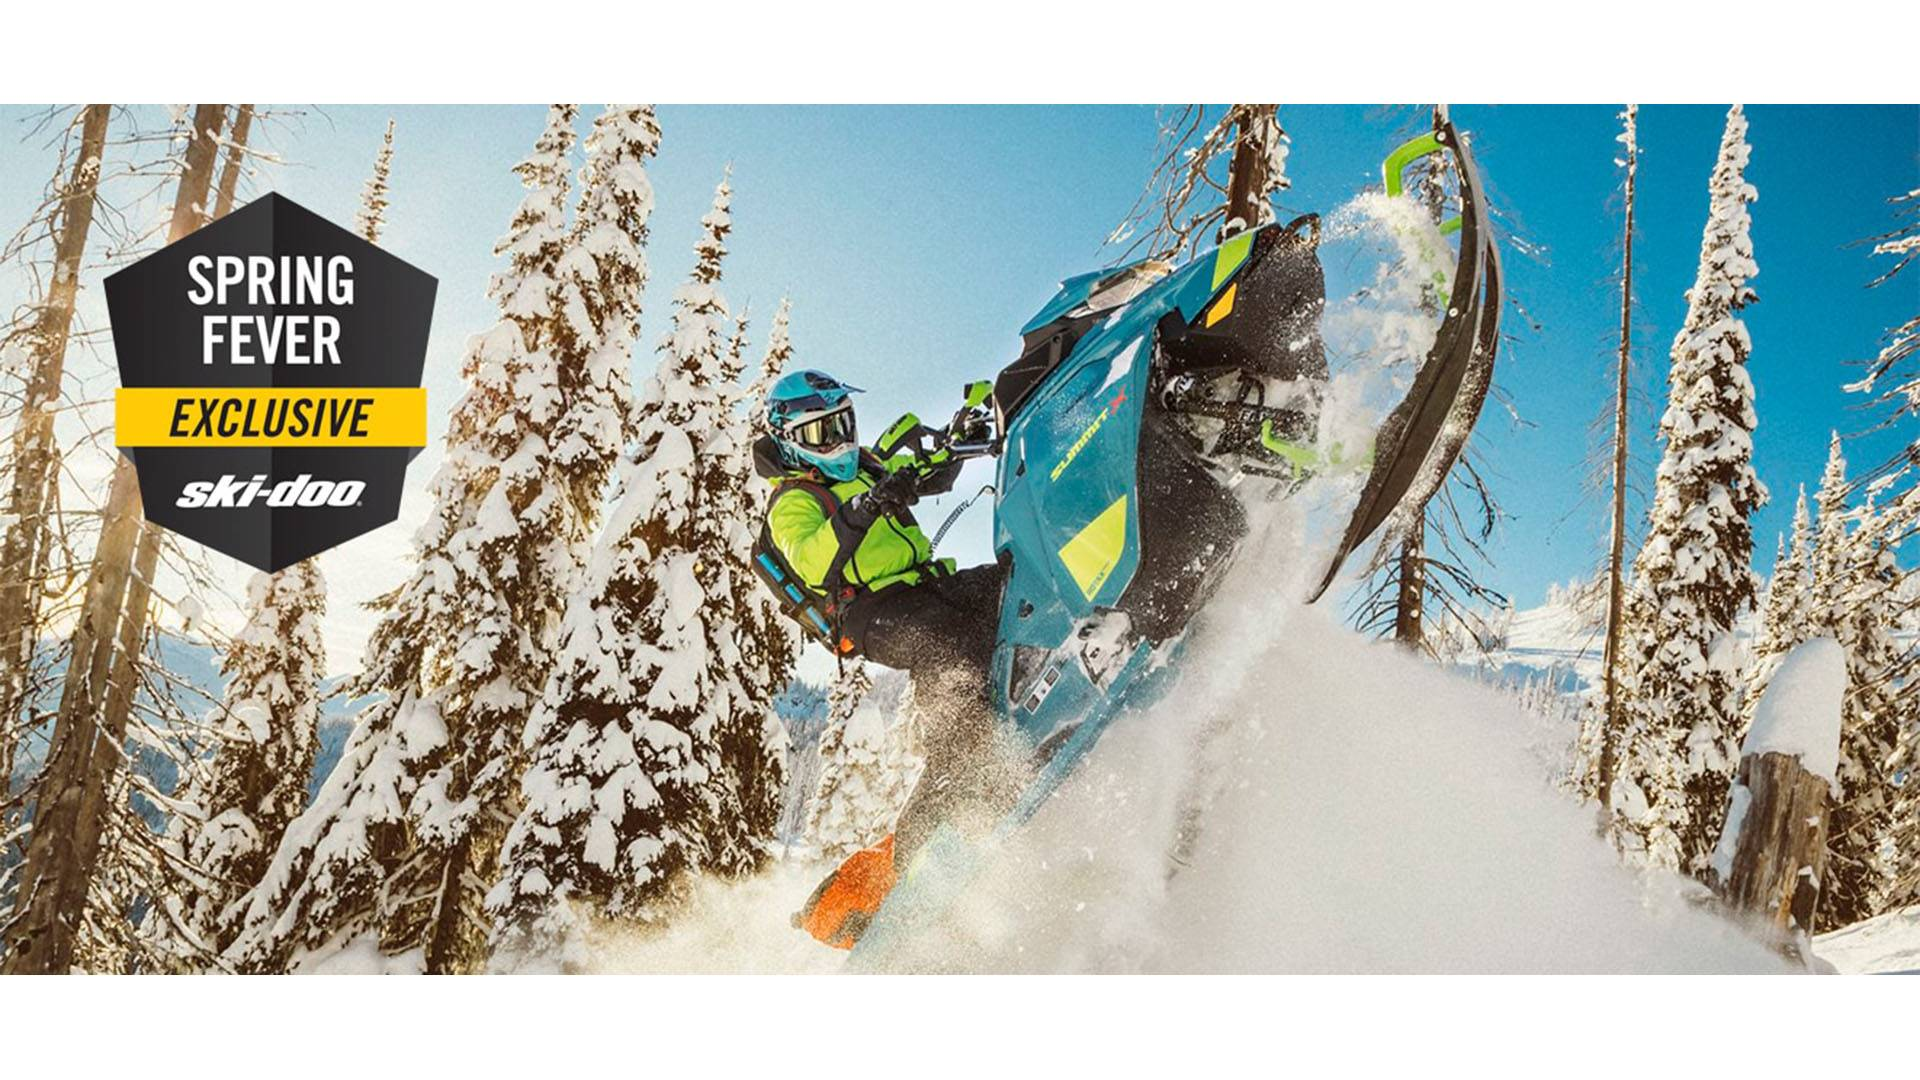 Ski-Doo - Spring Fever Exclusive - All 2020 Models